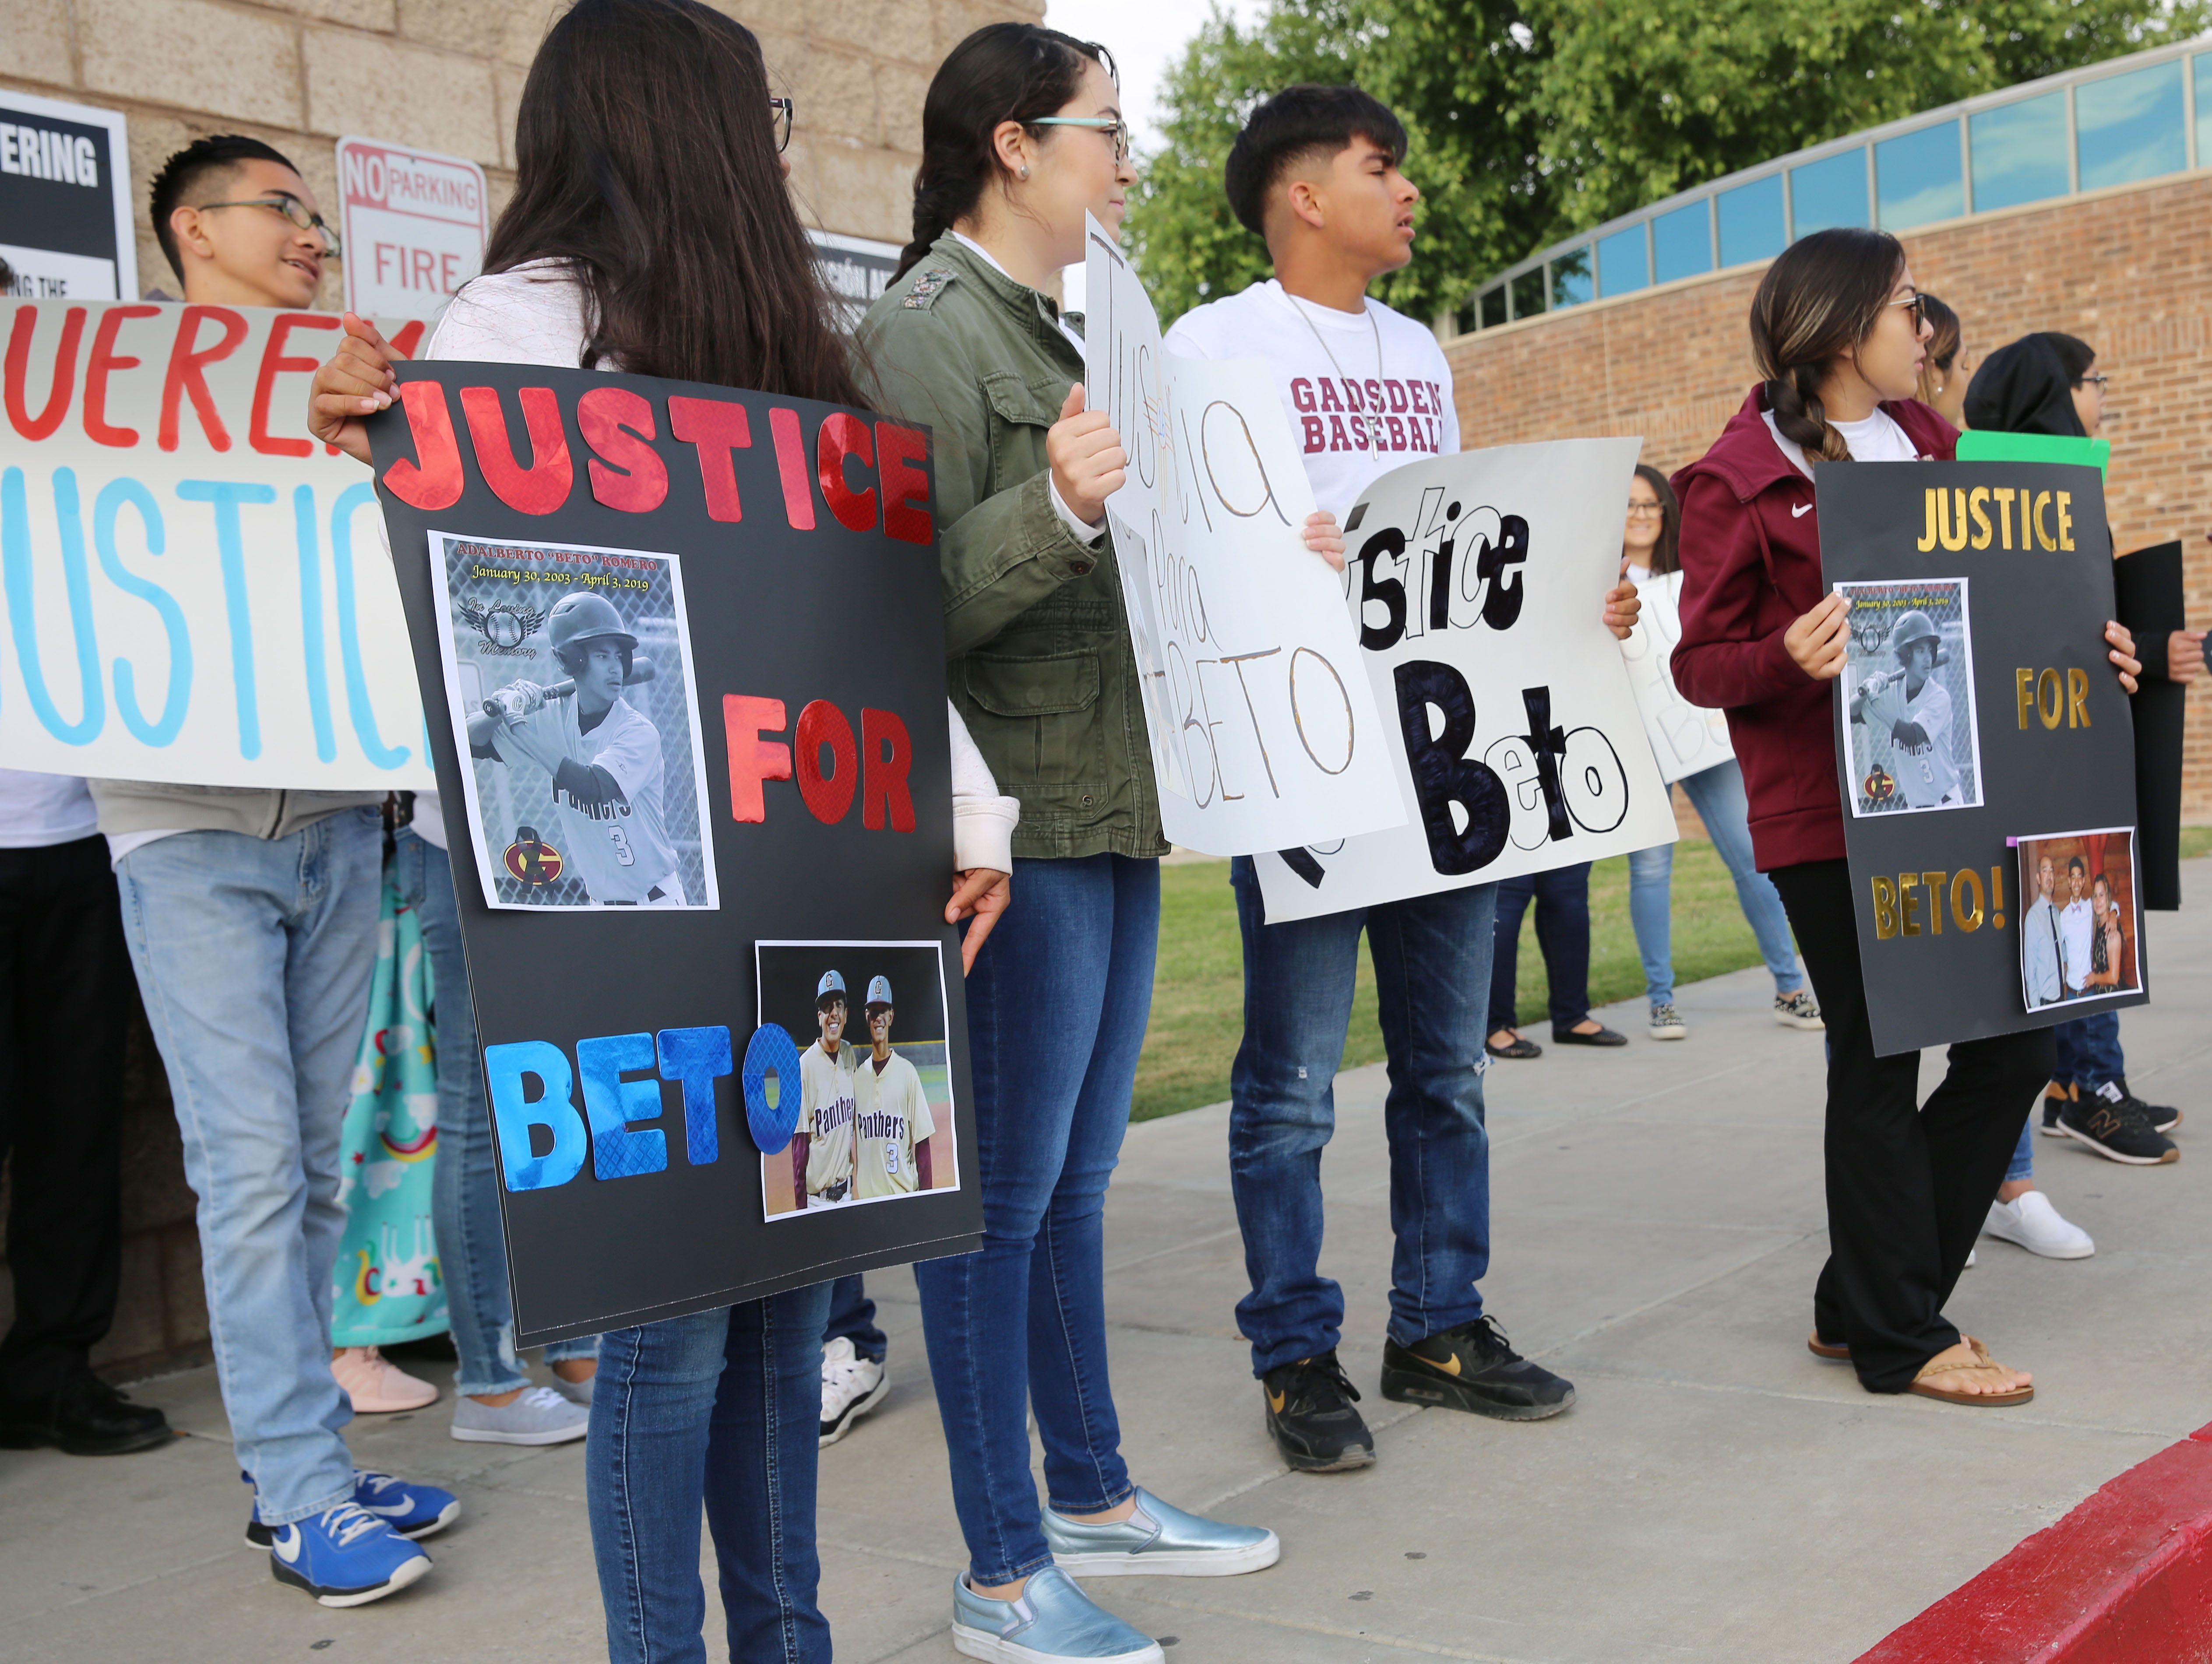 Family, friends and community members gather at the 3rd Judicial District Courthouse Friday May 10, 2019, in Las Cruces, to support the family of Beto Romero, the 16-year-old Gadsden High School baseball player, who was killed outside of his house on April 3, in a hit-and-run accident. In a decision handed down by District Court Judge Marci Beyer, Oscar Ivan Anchondo, 21, who is accused of the crime, will remain incarcerated until the trial.